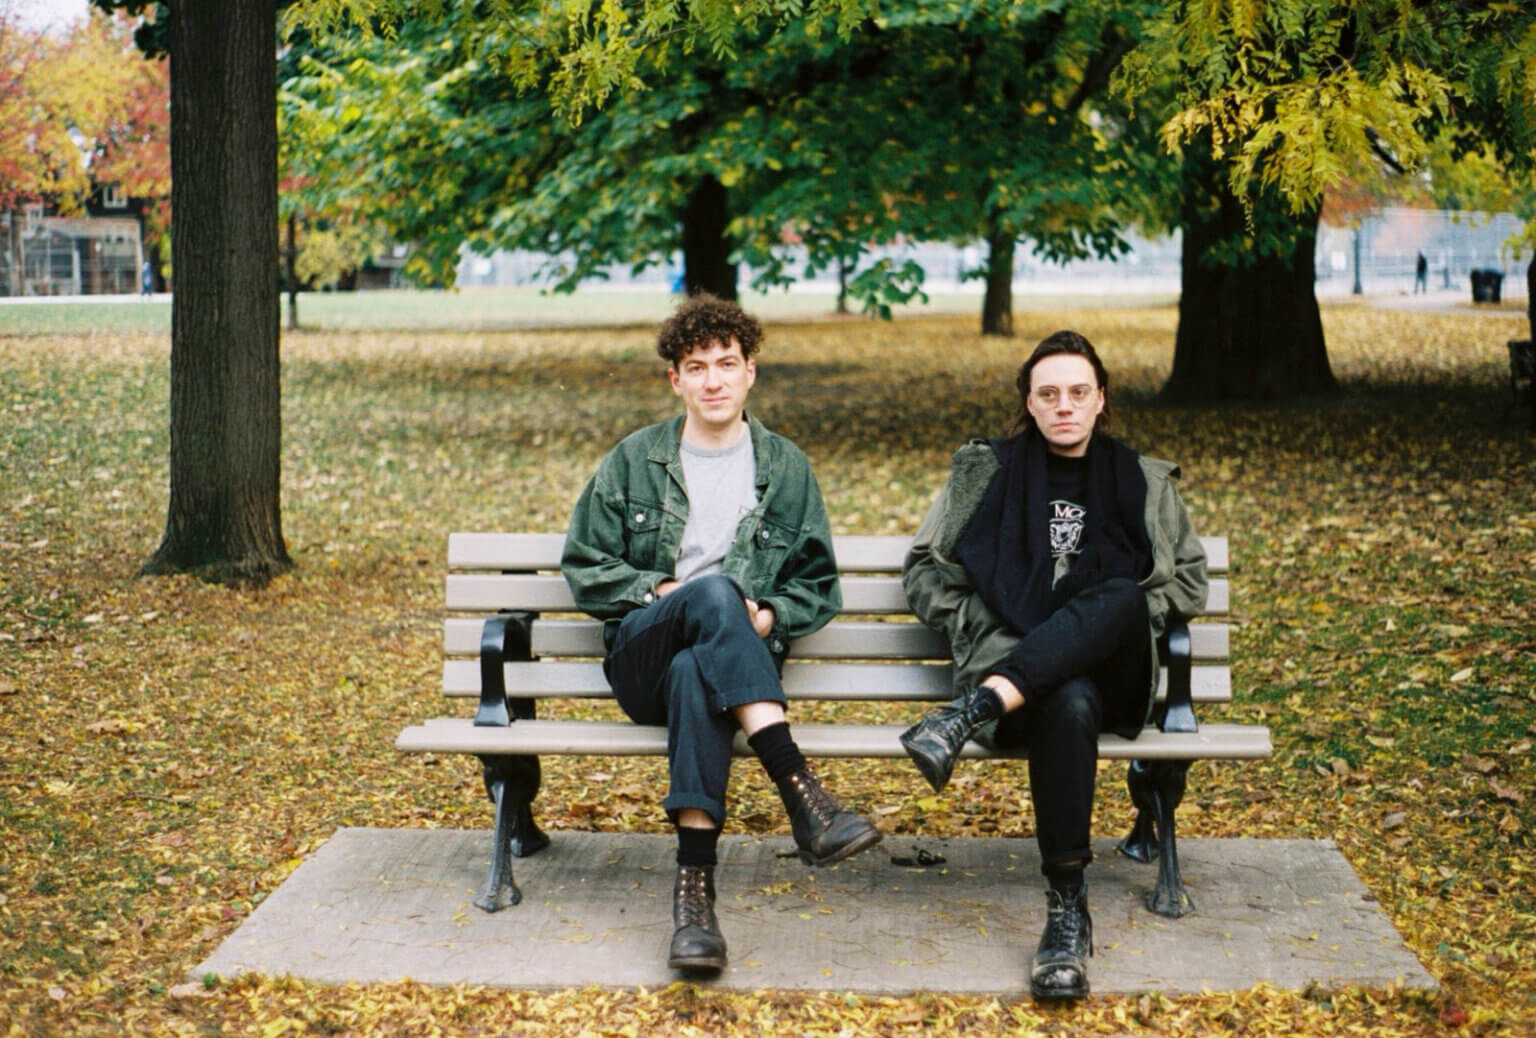 Ducks Ltd. FKA Ducks Unlimited, have signed with Carpark Records. The band will be dropping expanded reissue of debut EP Get Bleak